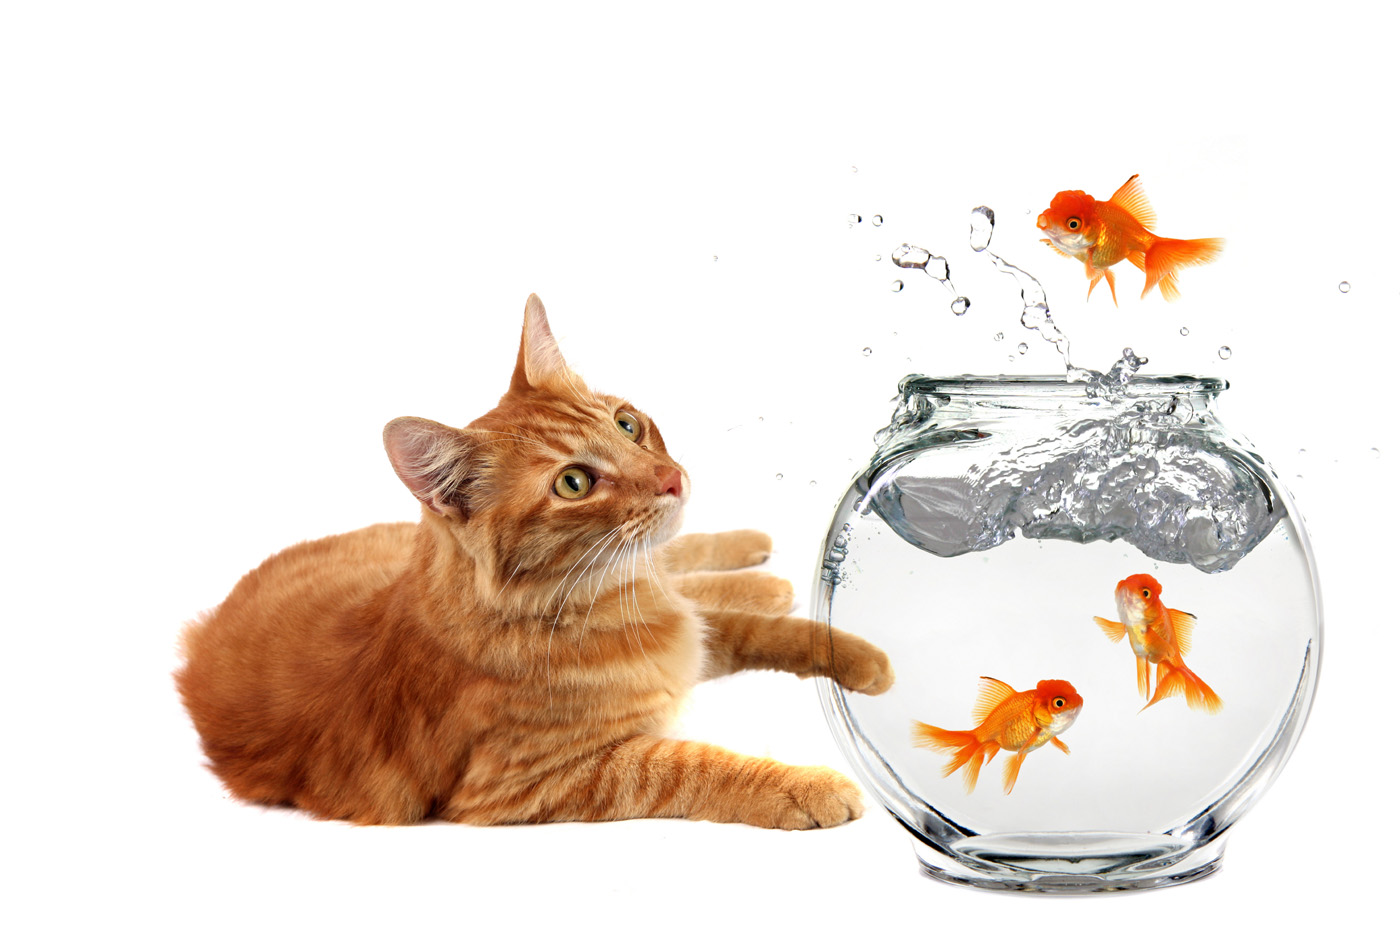 Cat and goldfish 3383